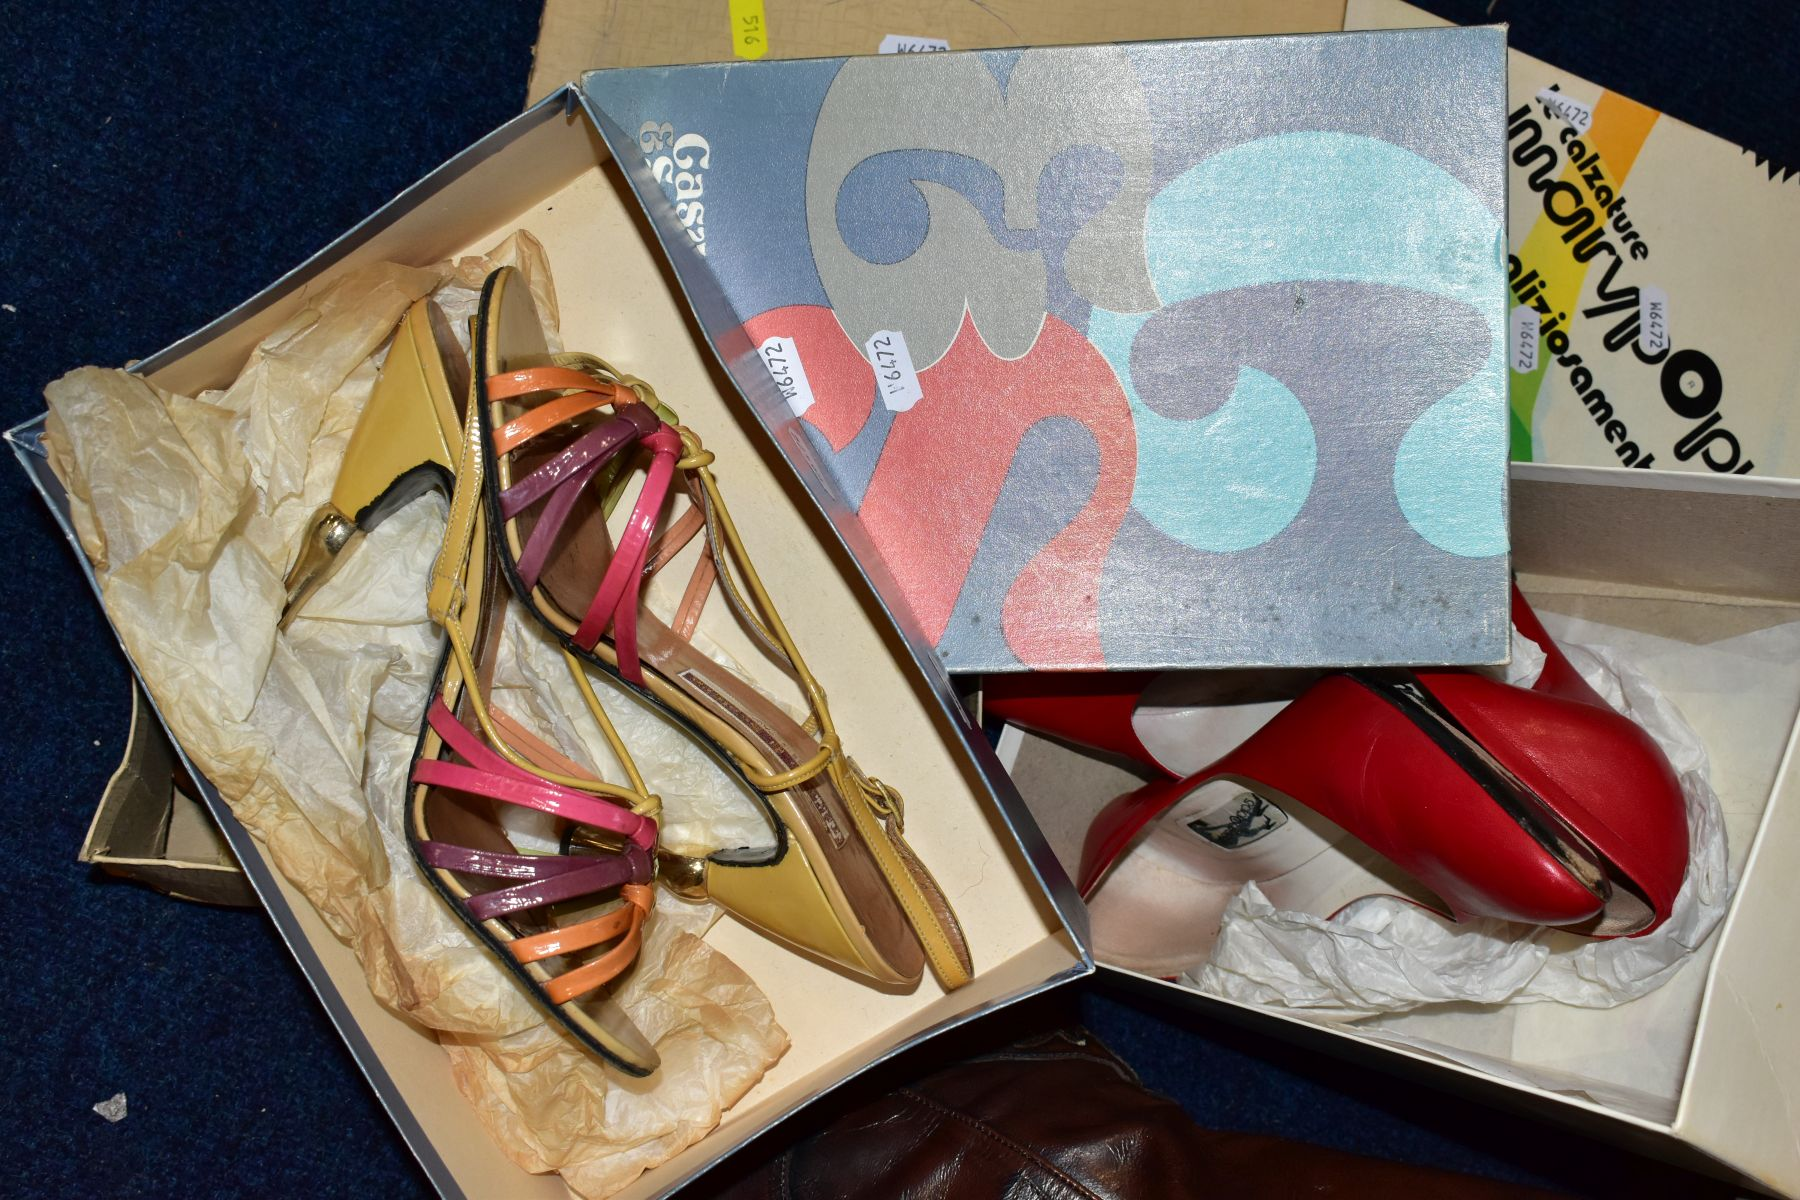 A QUANTITY OF LADIES SHOES AND HANDBAGS, EVENING BAGS, BOXED AND LOOSE, including a boxed pair of - Image 6 of 7